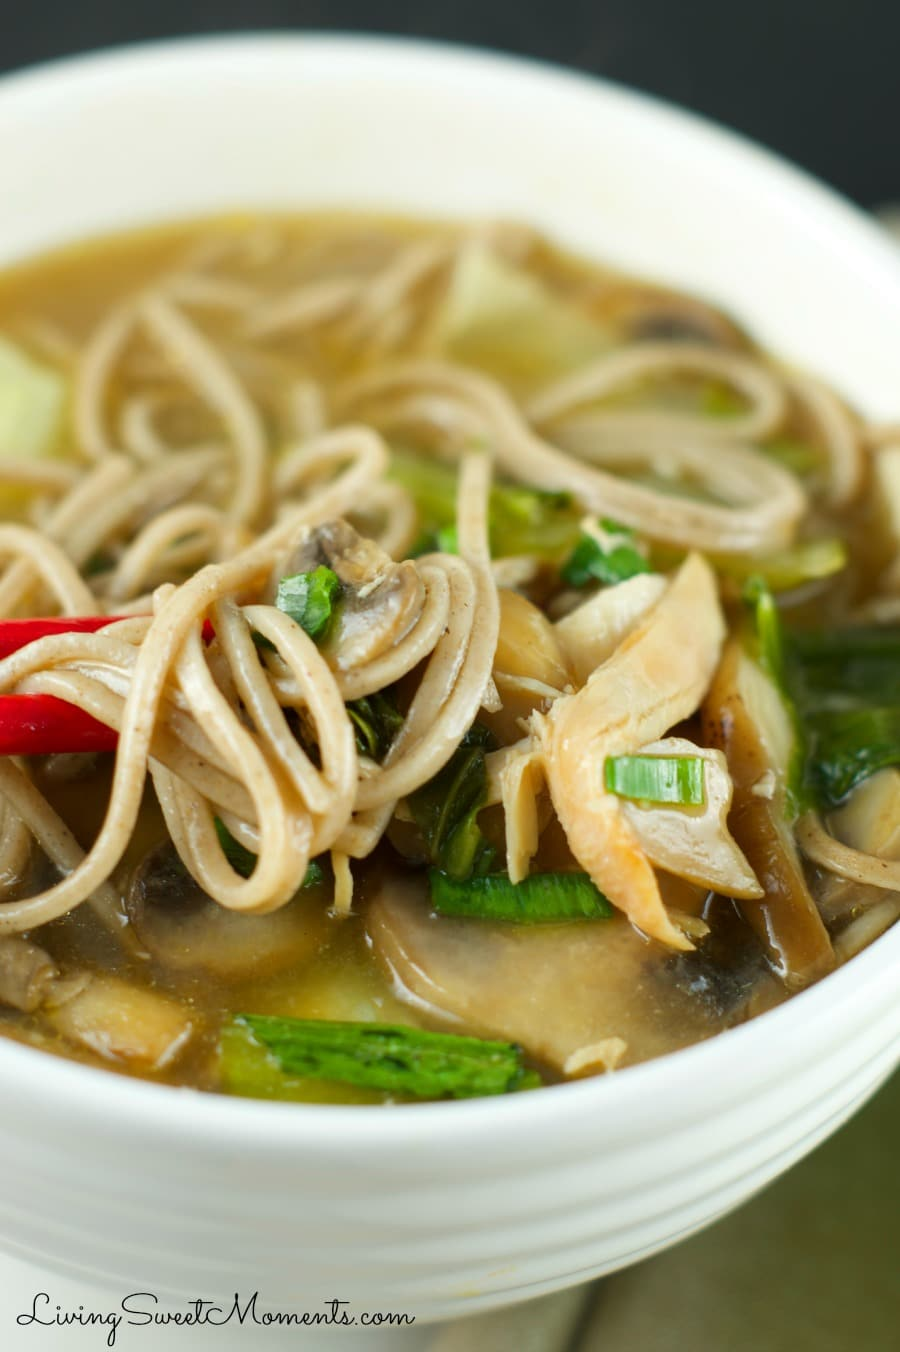 Chicken Soba Noodle Soup - Easy to make and delicious! A flavorful broth is served with soba noodles, chicken, bok choy and mushrooms in a comforting soup that will warm you during chilly nights.